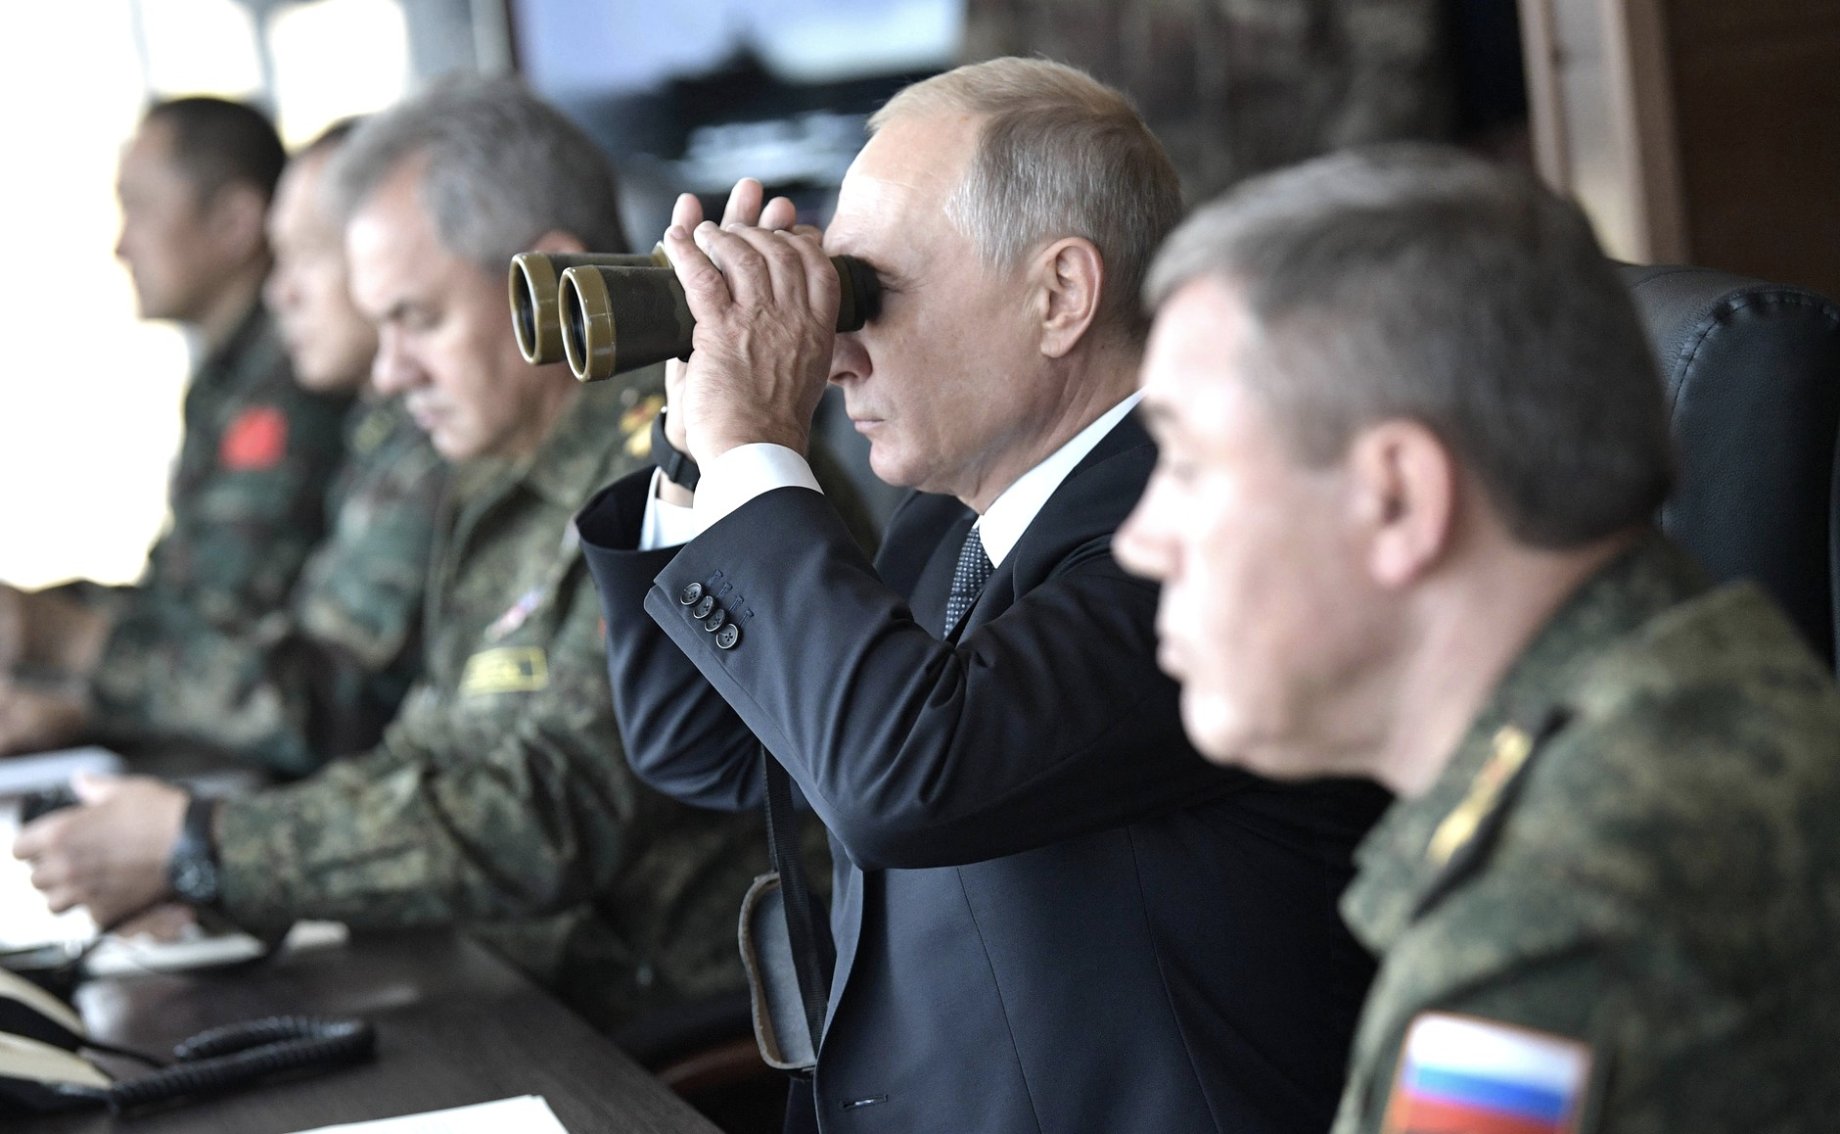 Putin claims Russia is 'peaceful country' during largest ever military drills